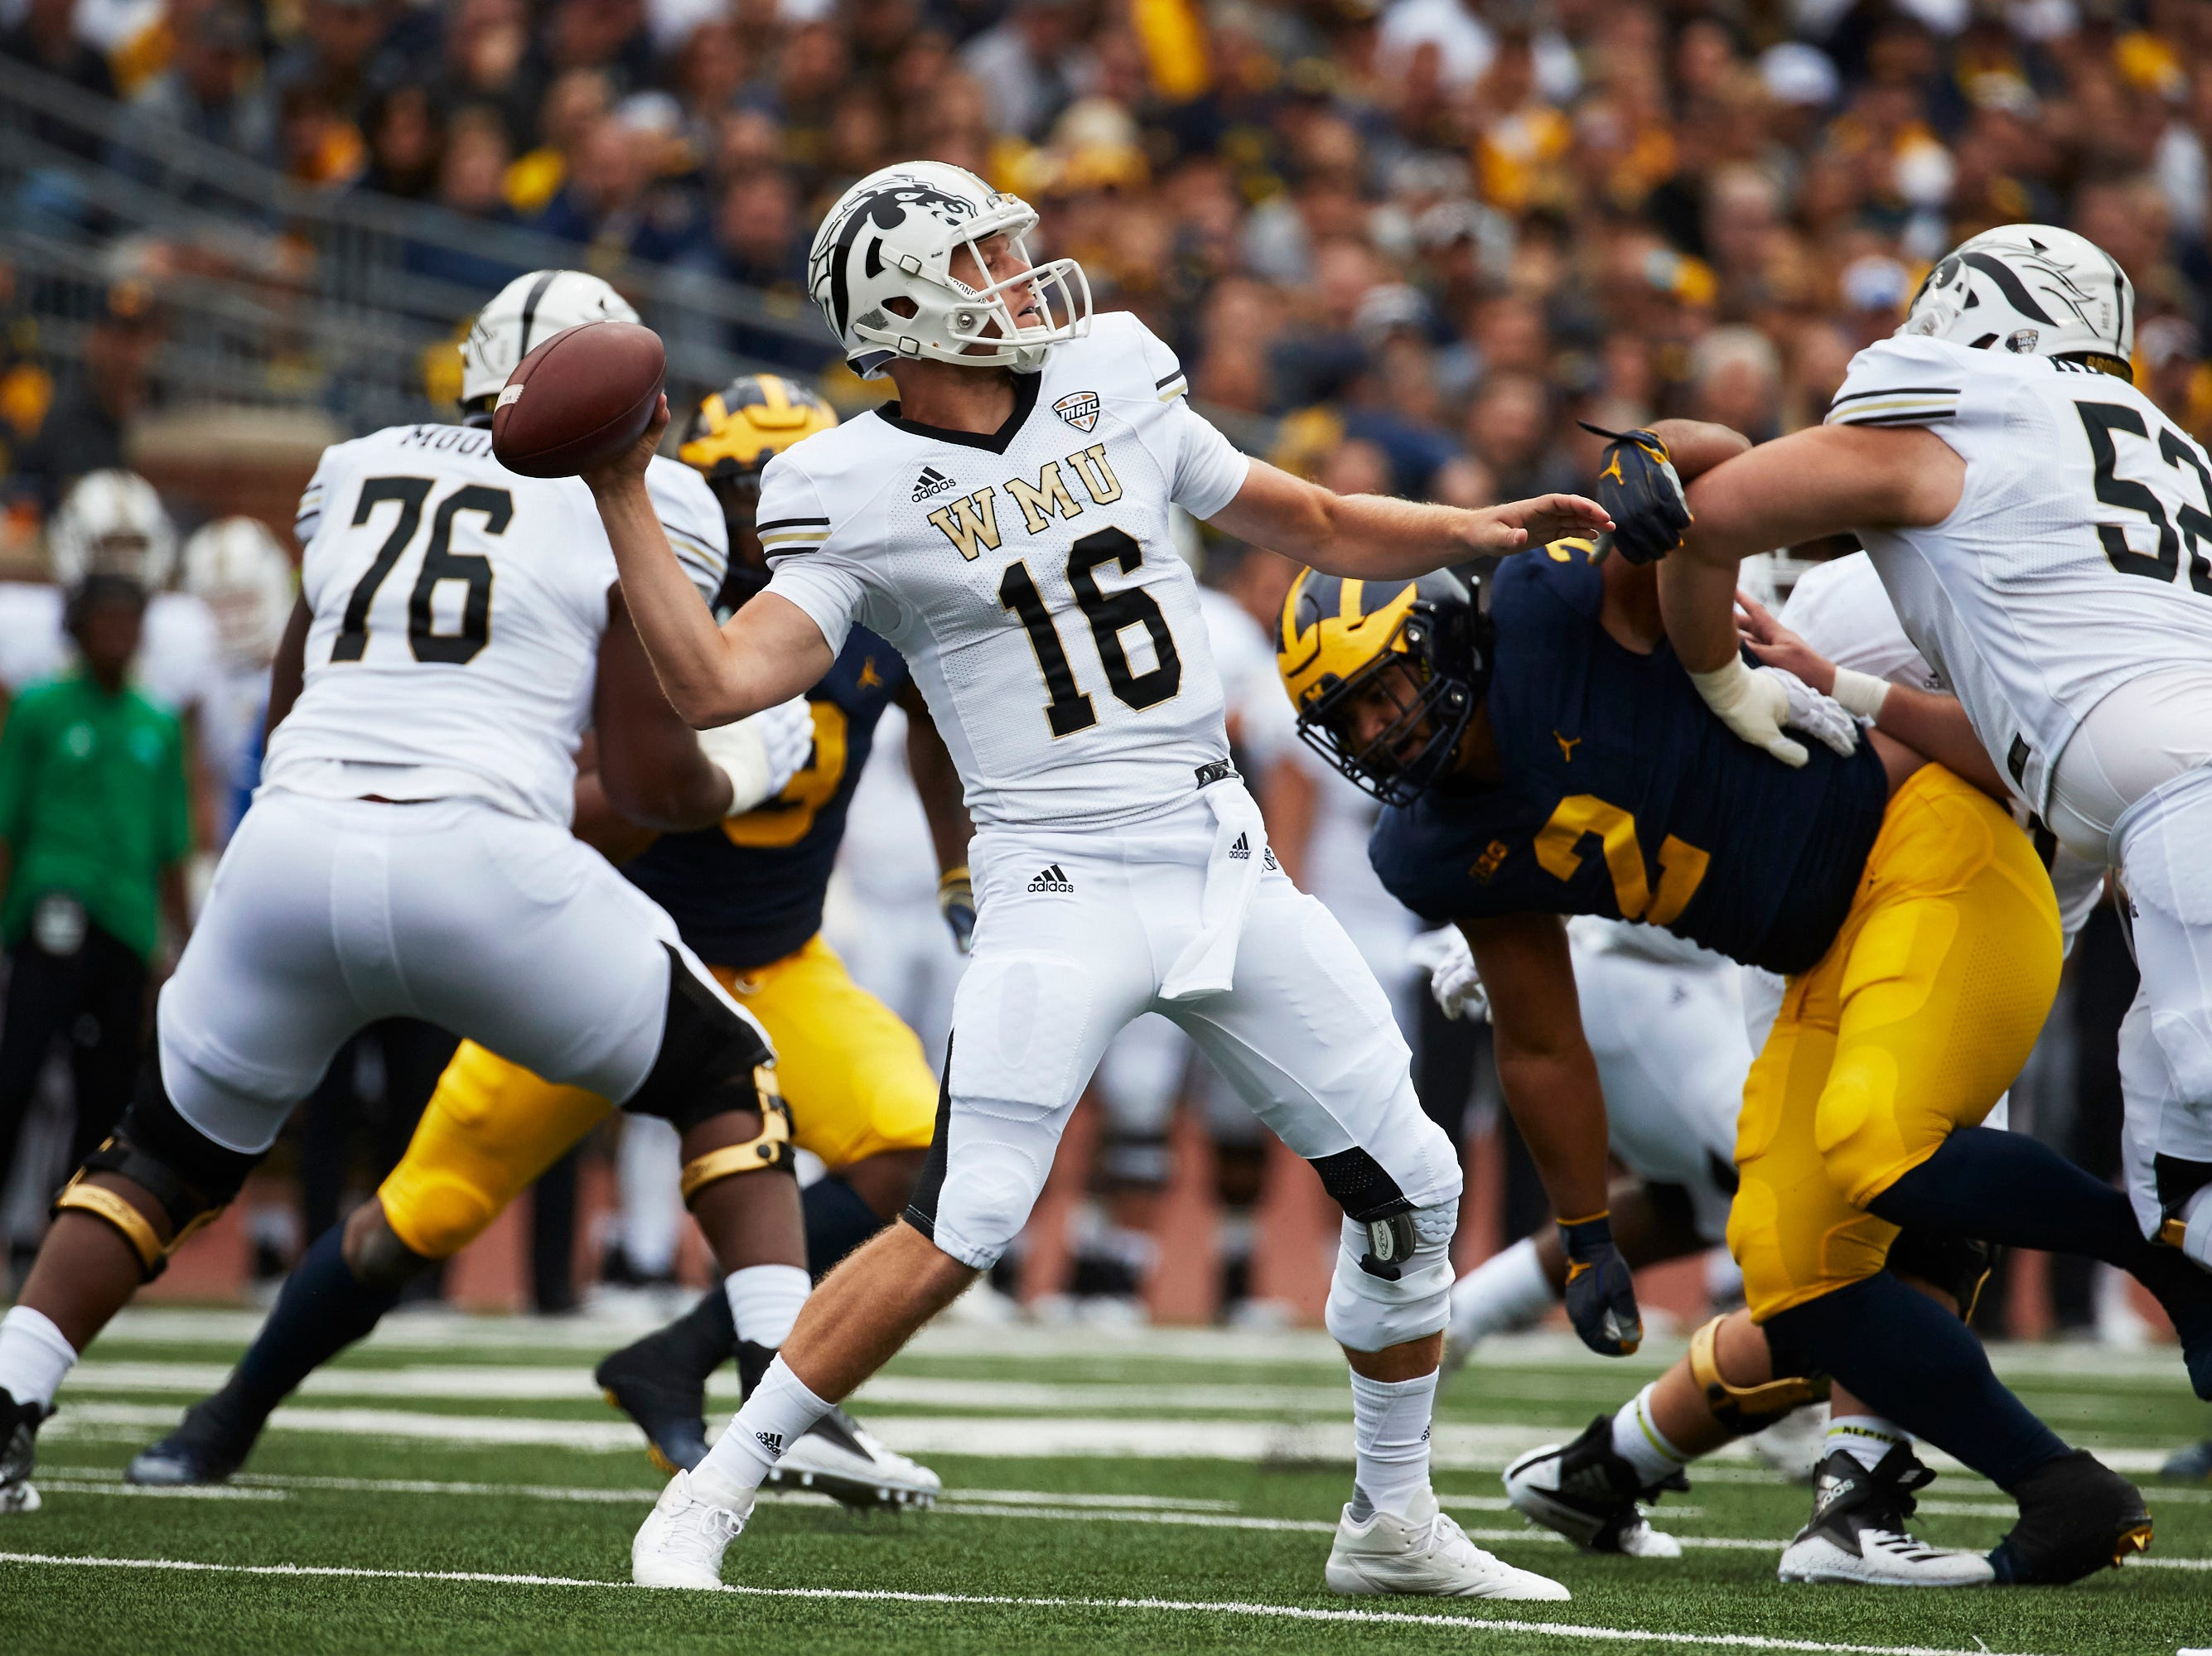 Sep 8, 2018; Ann Arbor, MI, USA; Western Michigan Broncos quarterback Jon Wassink (16) throws a pass in the first half against the Michigan Wolverines at Michigan Stadium. Mandatory Credit: Rick Osentoski-USA TODAY Sports